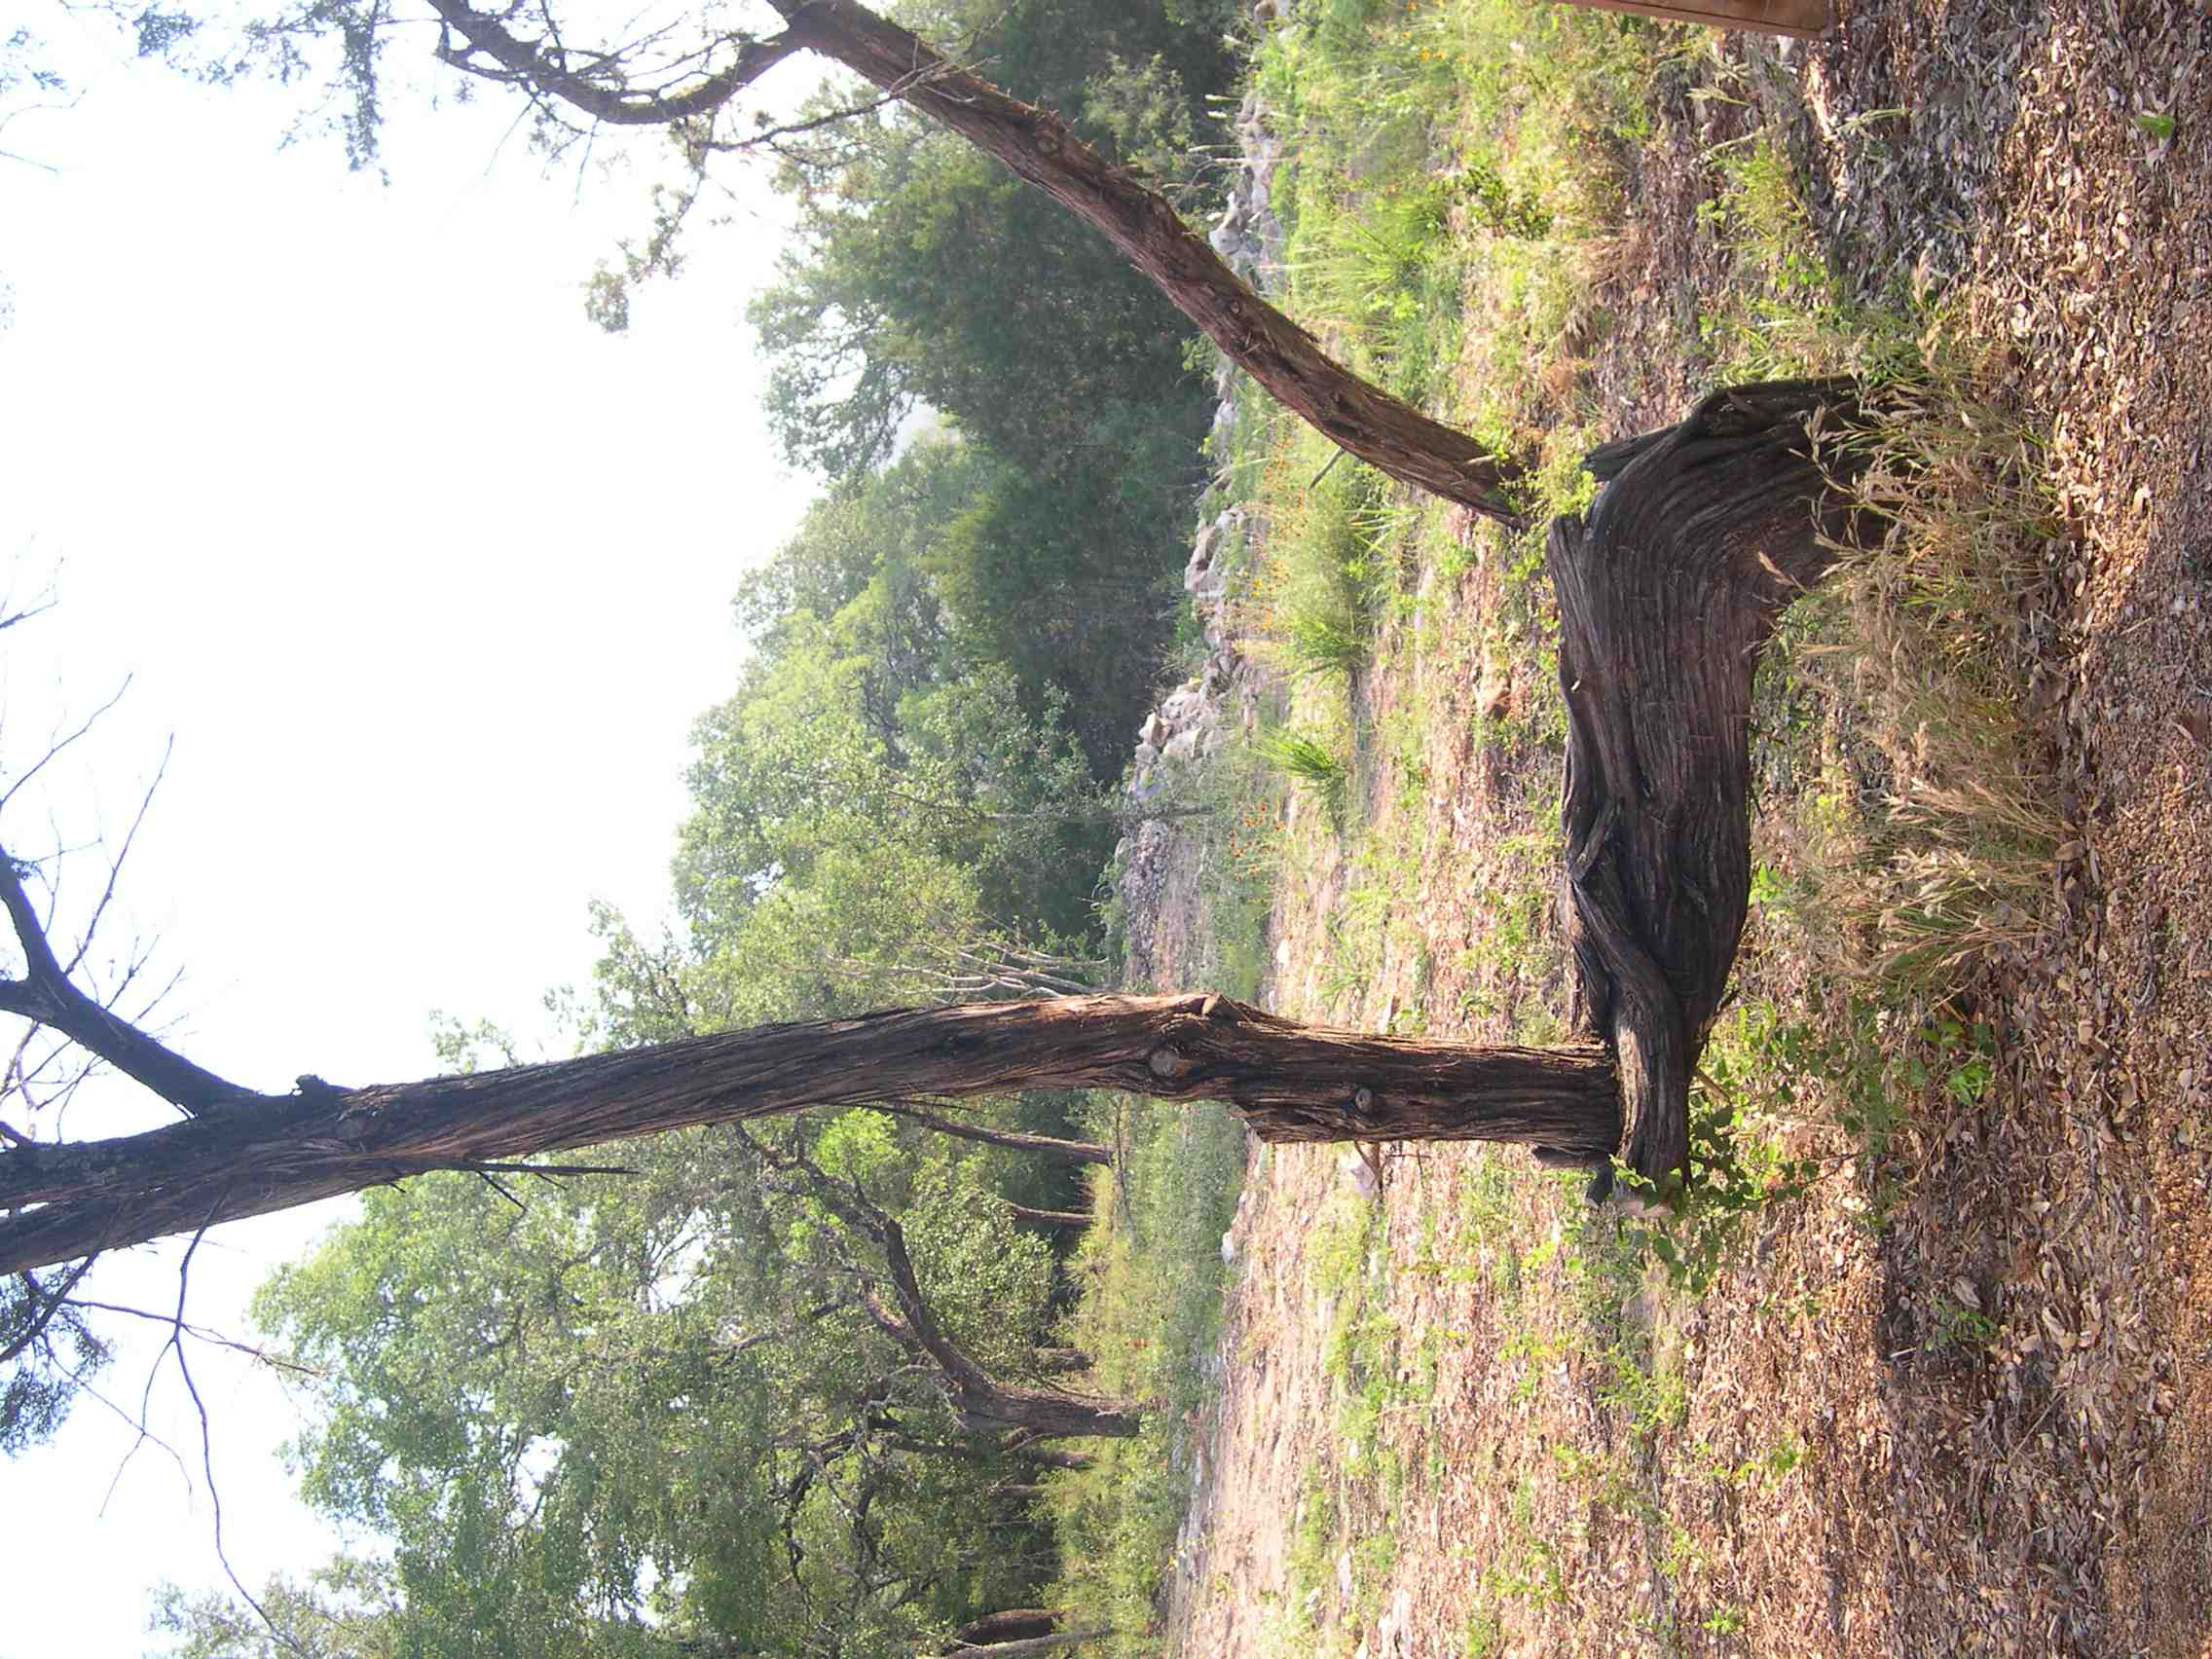 pointing tree dripping springs.jpg